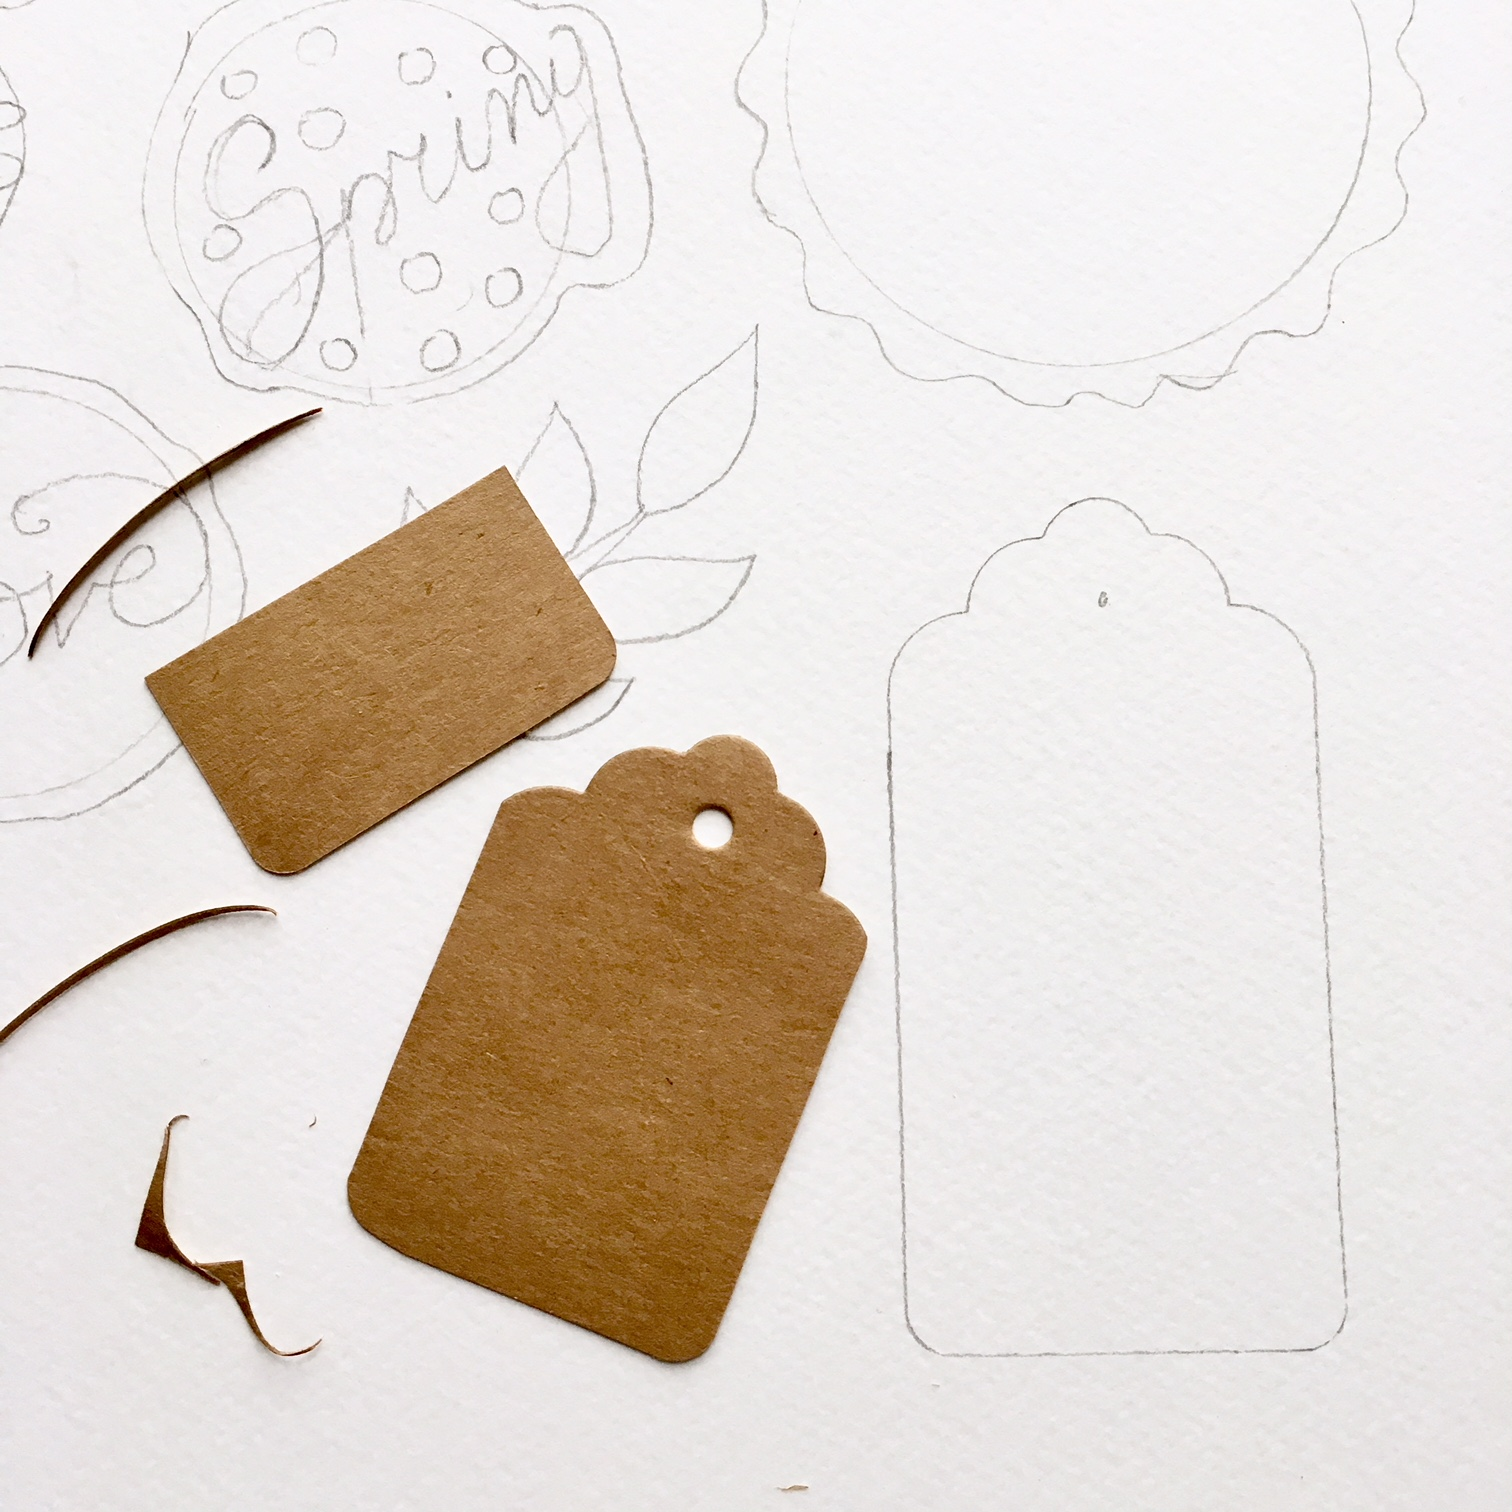 use old clothes labels as templates for your DIY scrapbook embellishments